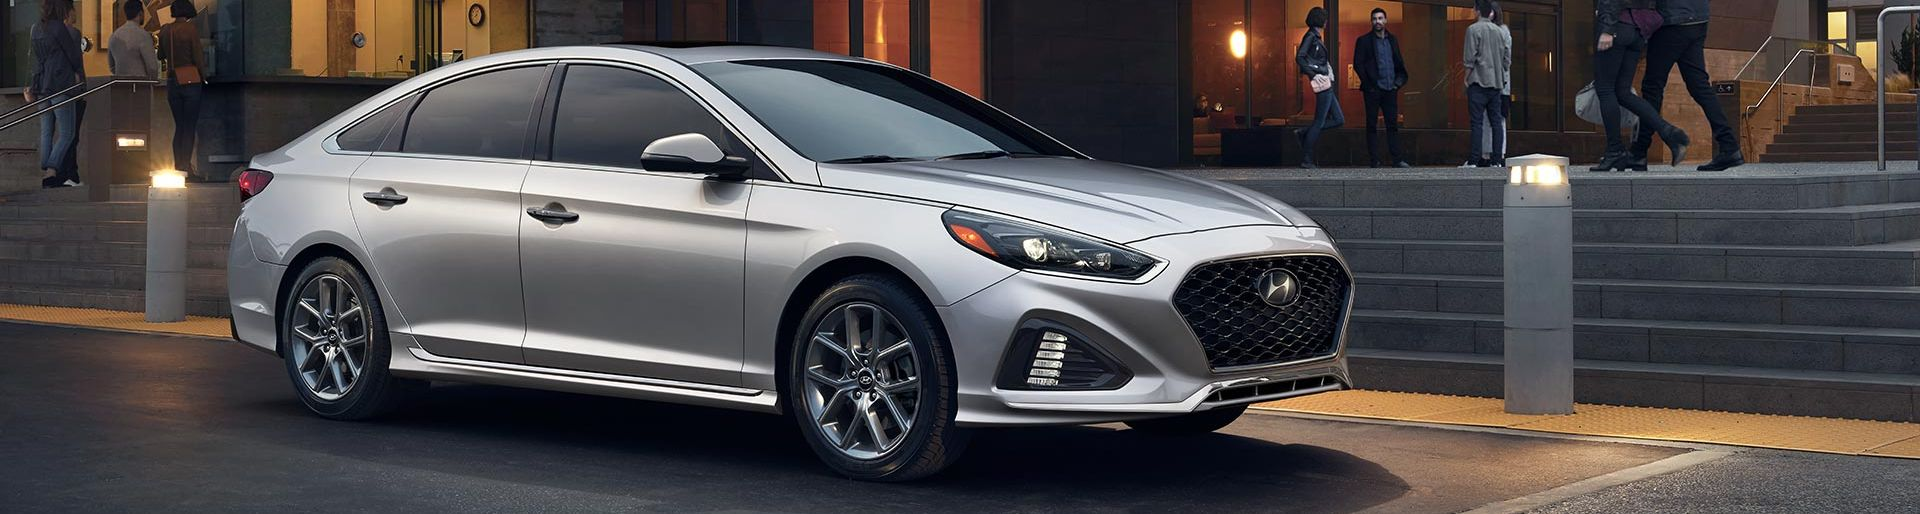 2018 Hyundai Sonata Trim Levels in Capitol Heights, MD